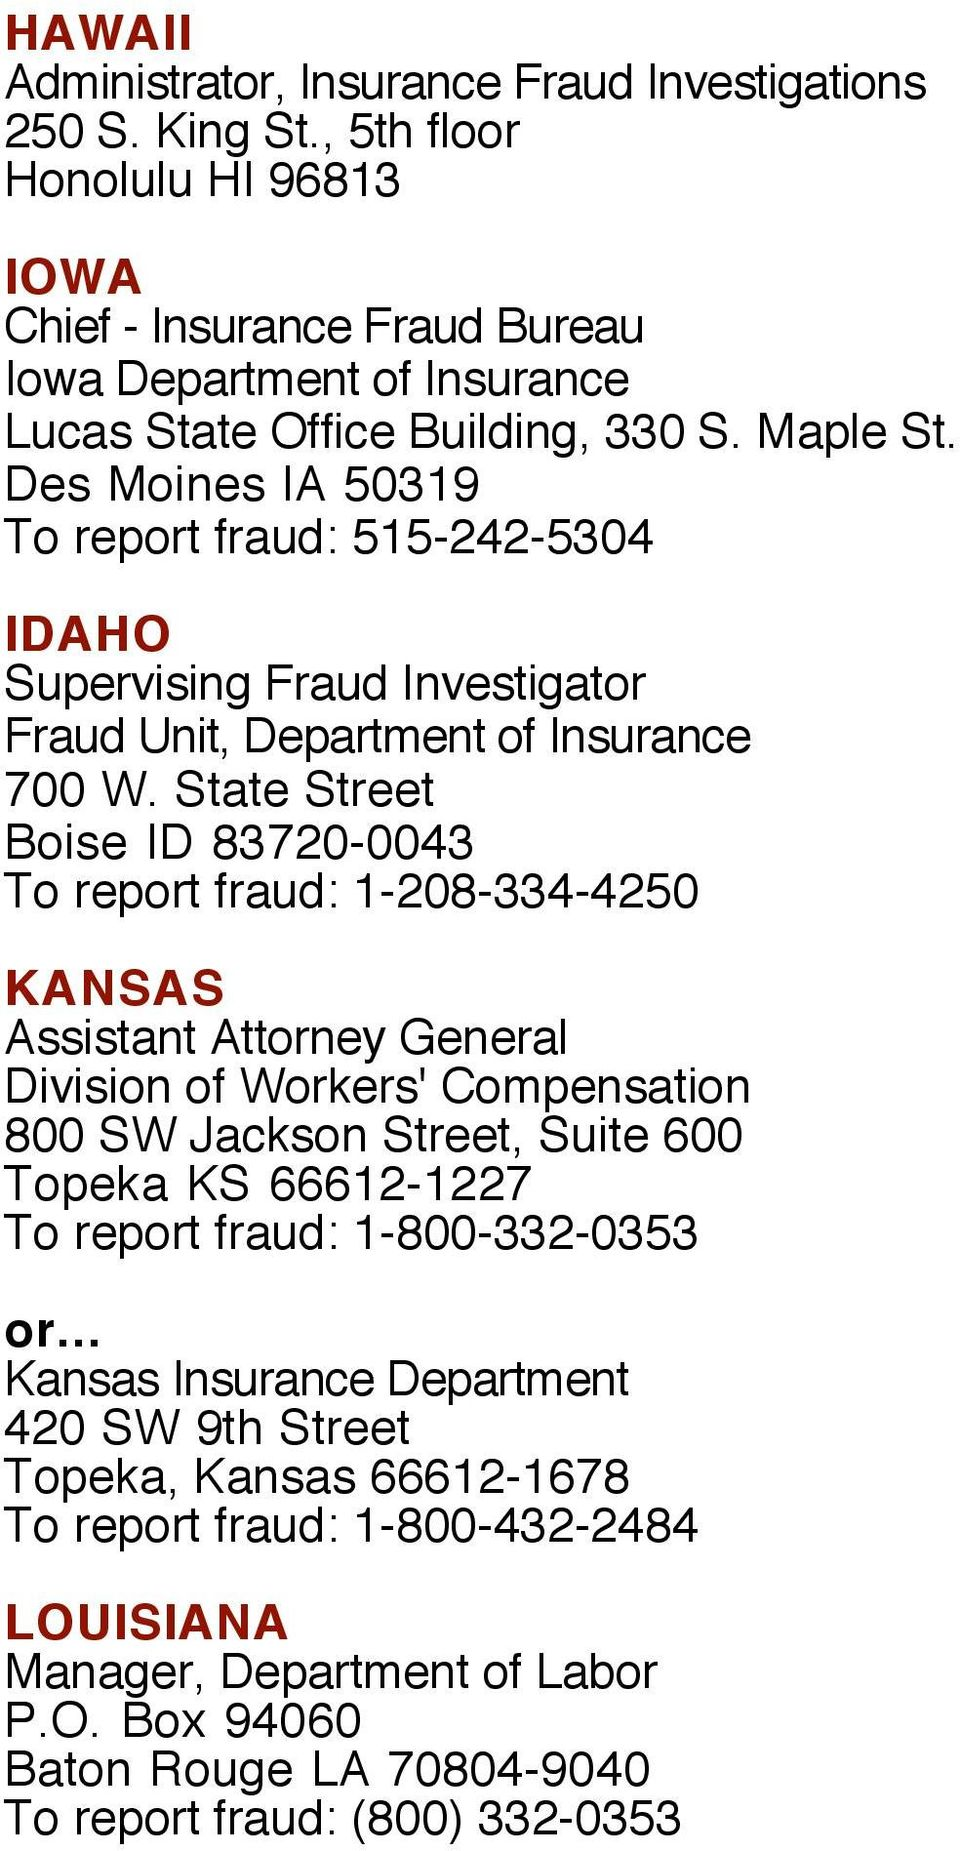 State Street Boise ID 83720-0043 To report fraud: 1-208-334-4250 KANSAS Assistant Attorney General Division of Workers' Compensation 800 SW Jackson Street, Suite 600 Topeka KS